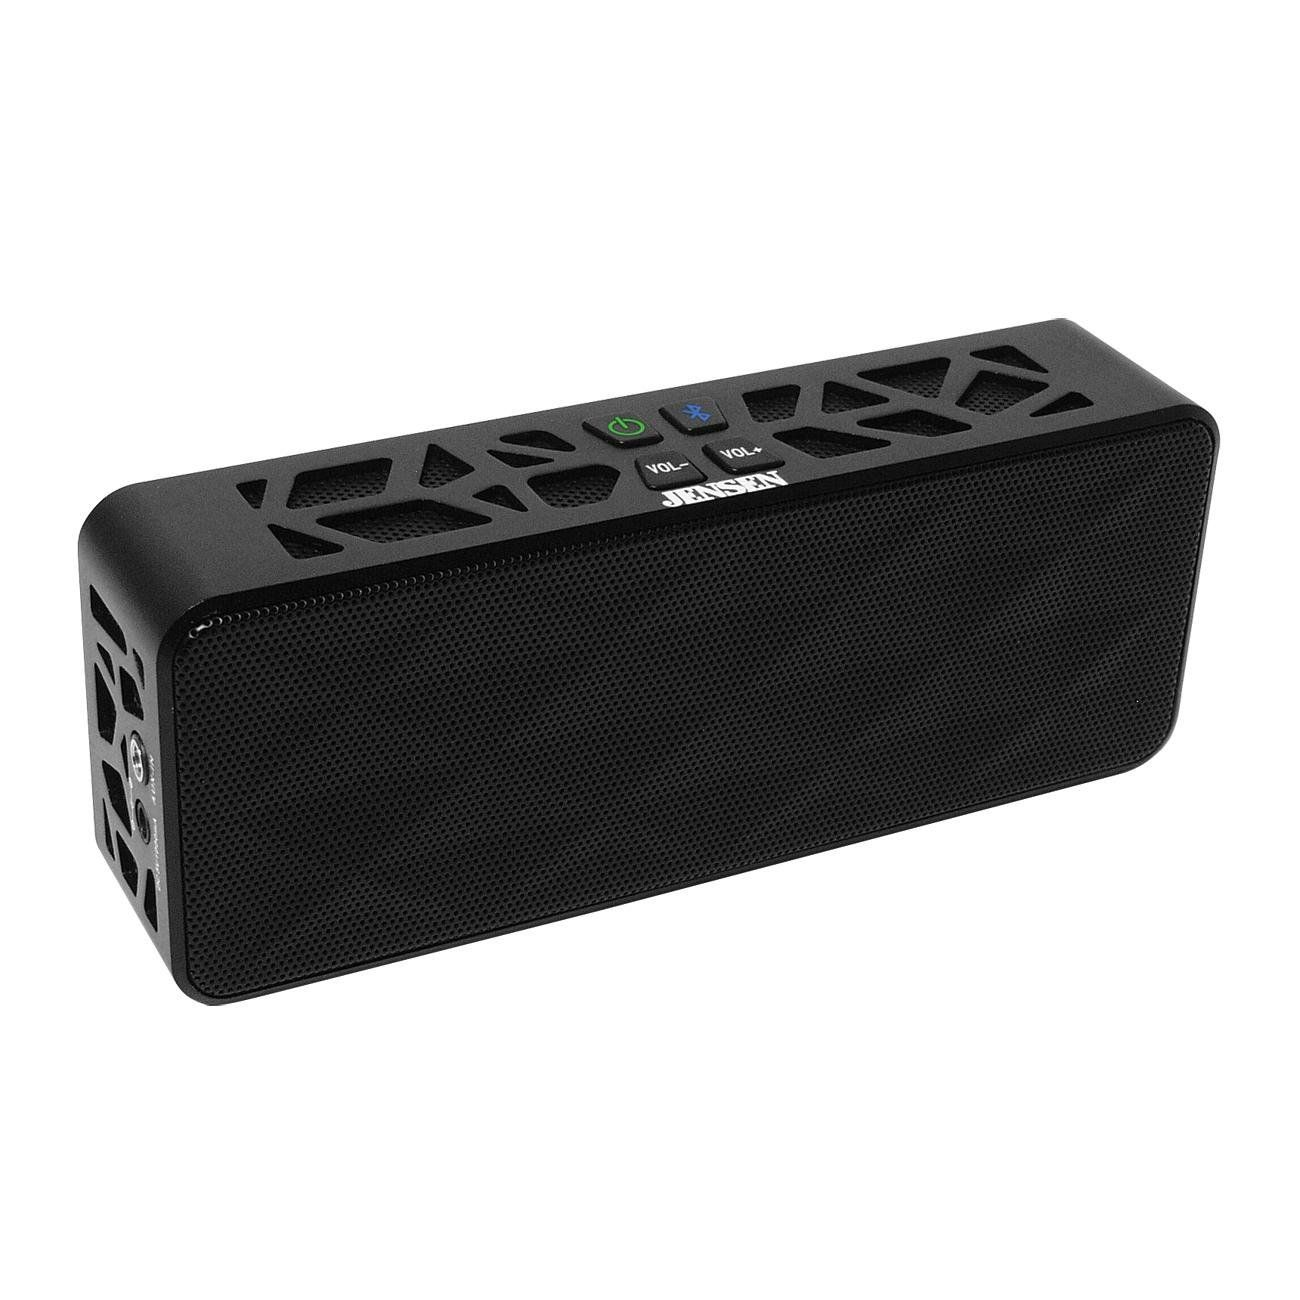 Jensen Portable Bluetooth Wireless Rechargeable Speaker For Ipod Fuse Box Iphone 2015